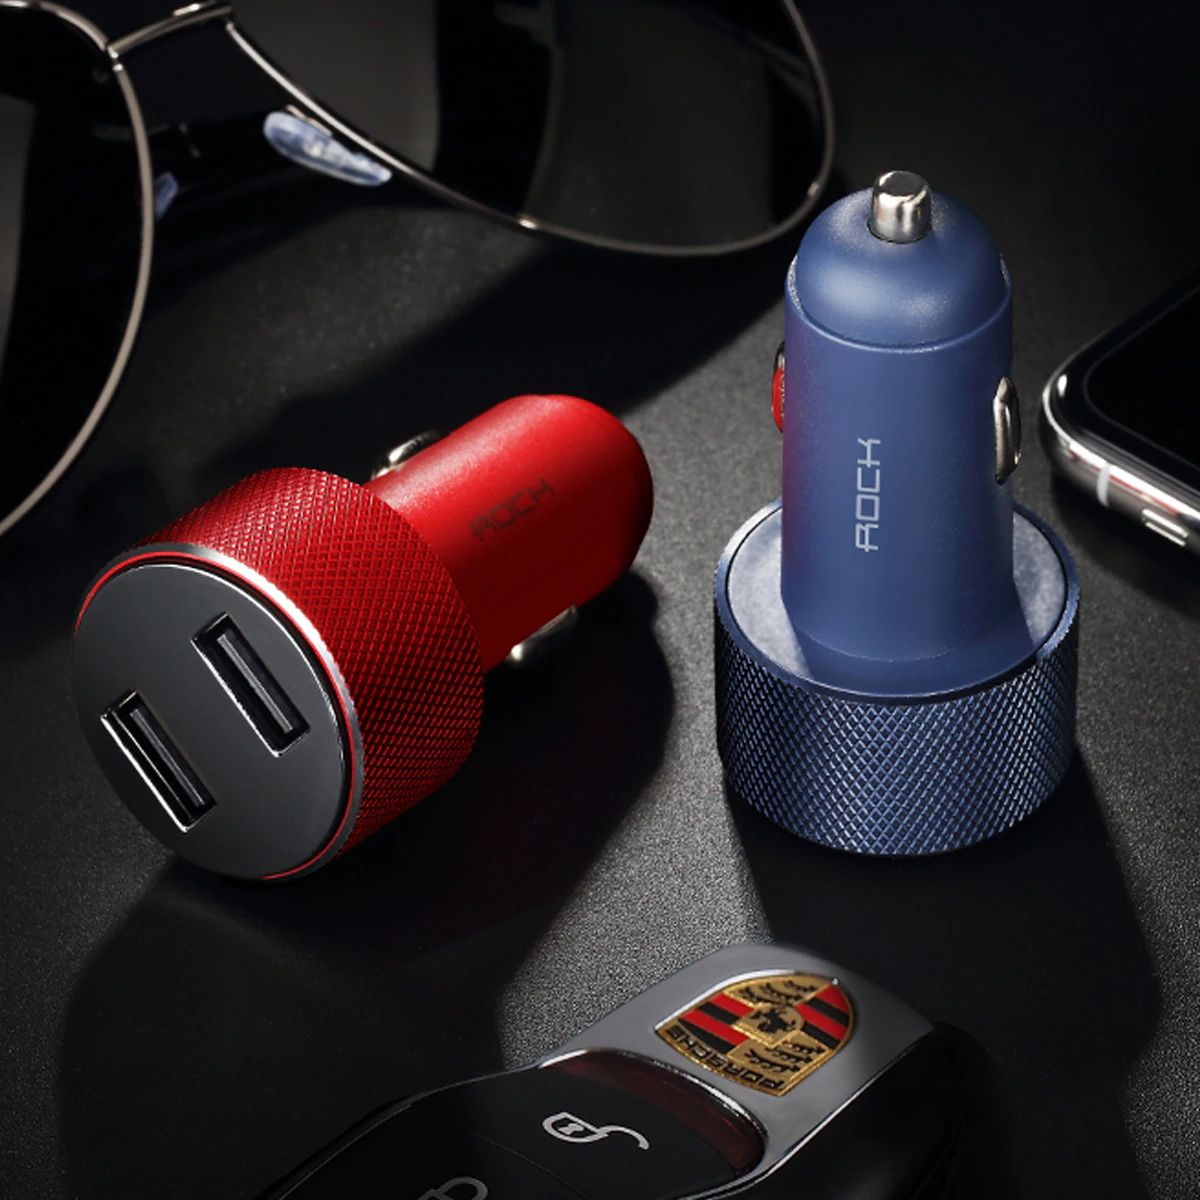 Rock Sitor Car Charger With Digital Display (13)